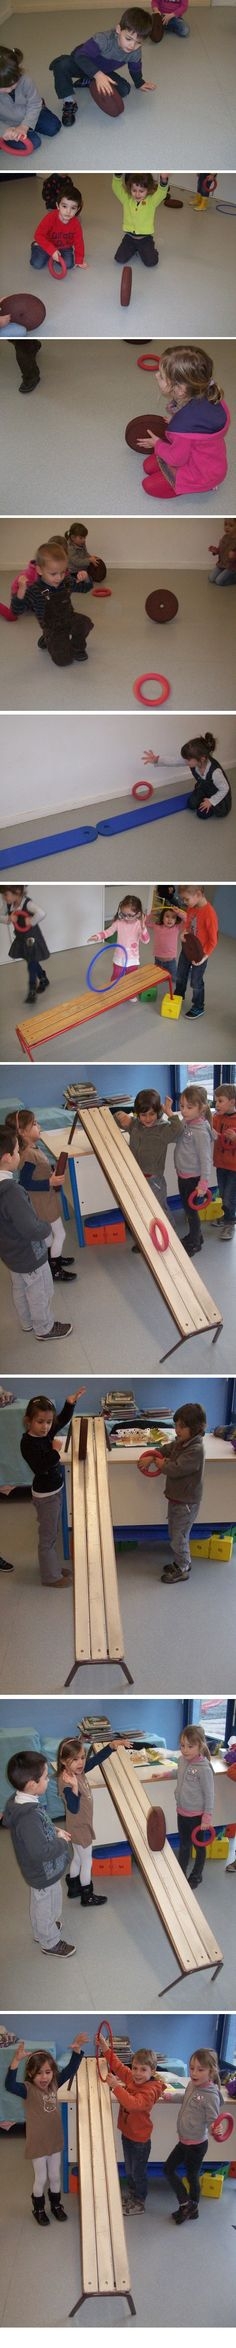 Faire rouler... comme la galette - Ecole Publique de la Vallée de l'Yon Gross Motor Activities, Sensory Activities, Activities For Kids, Gym Program, Multiplication For Kids, Petite Section, Outdoor Play, Pre School, Motor Skills